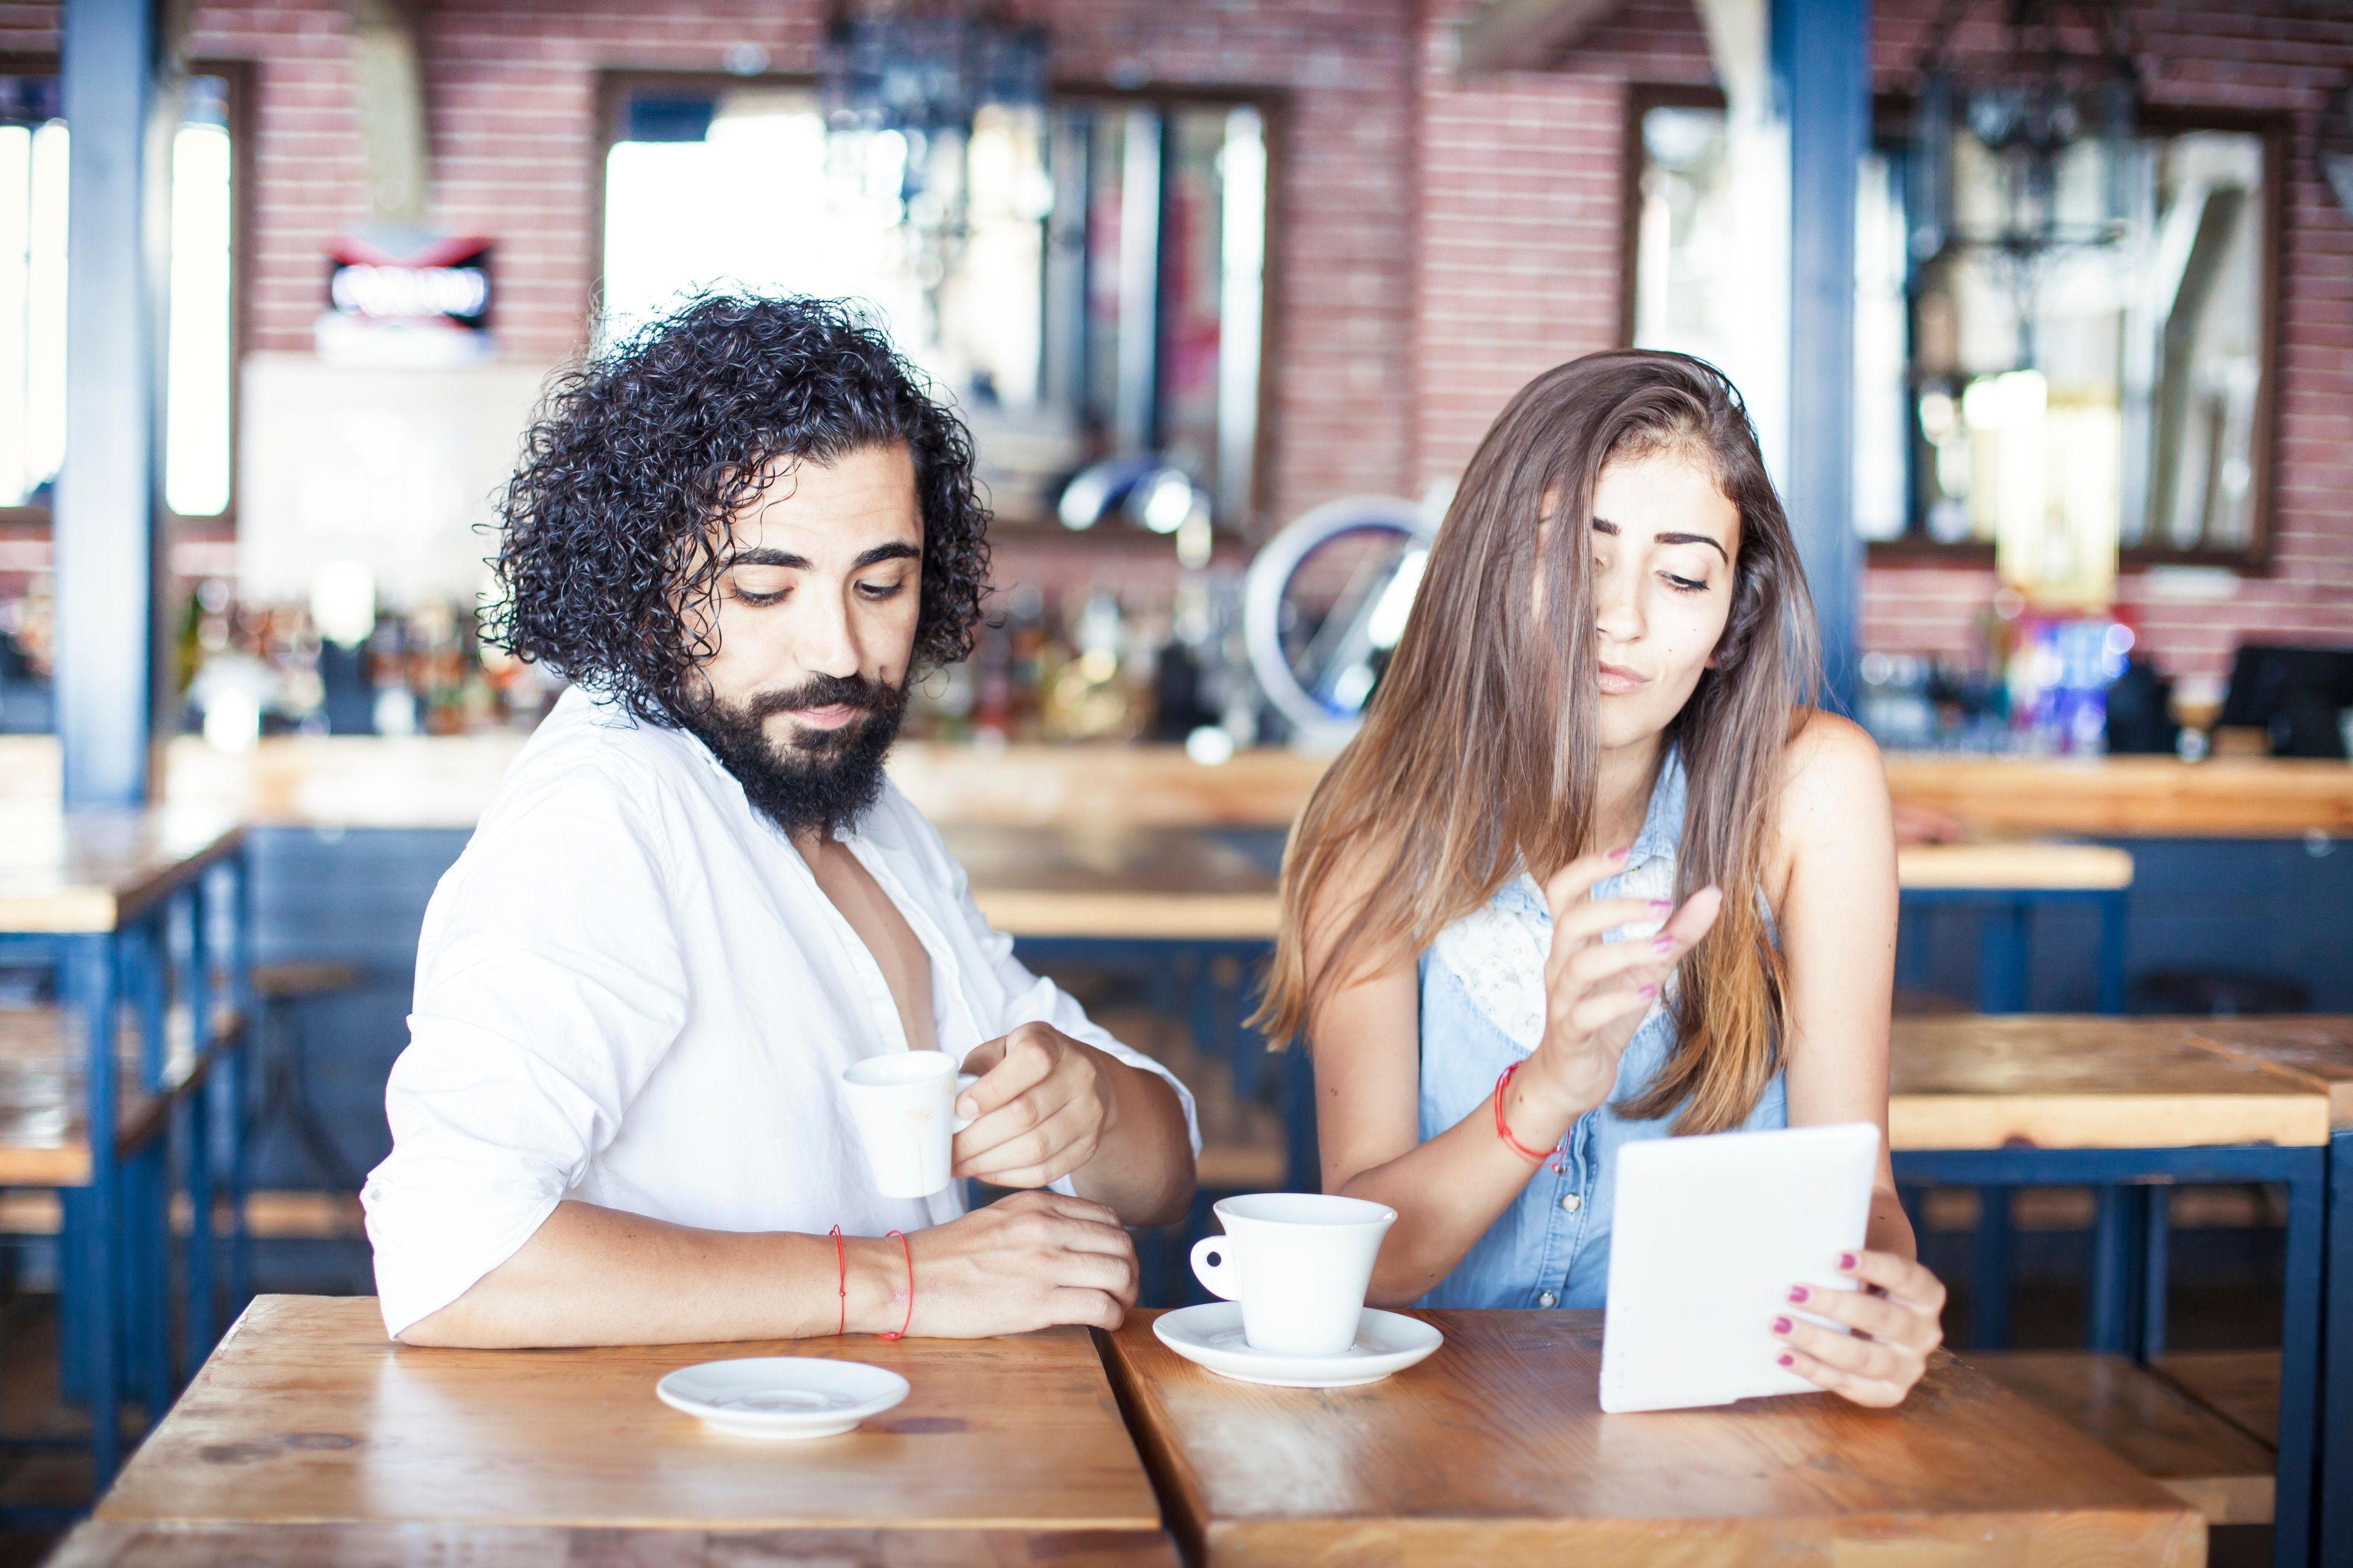 Young couple in a cafe. People in the image are  worn with casual clothes. woman  is holding tablet pc